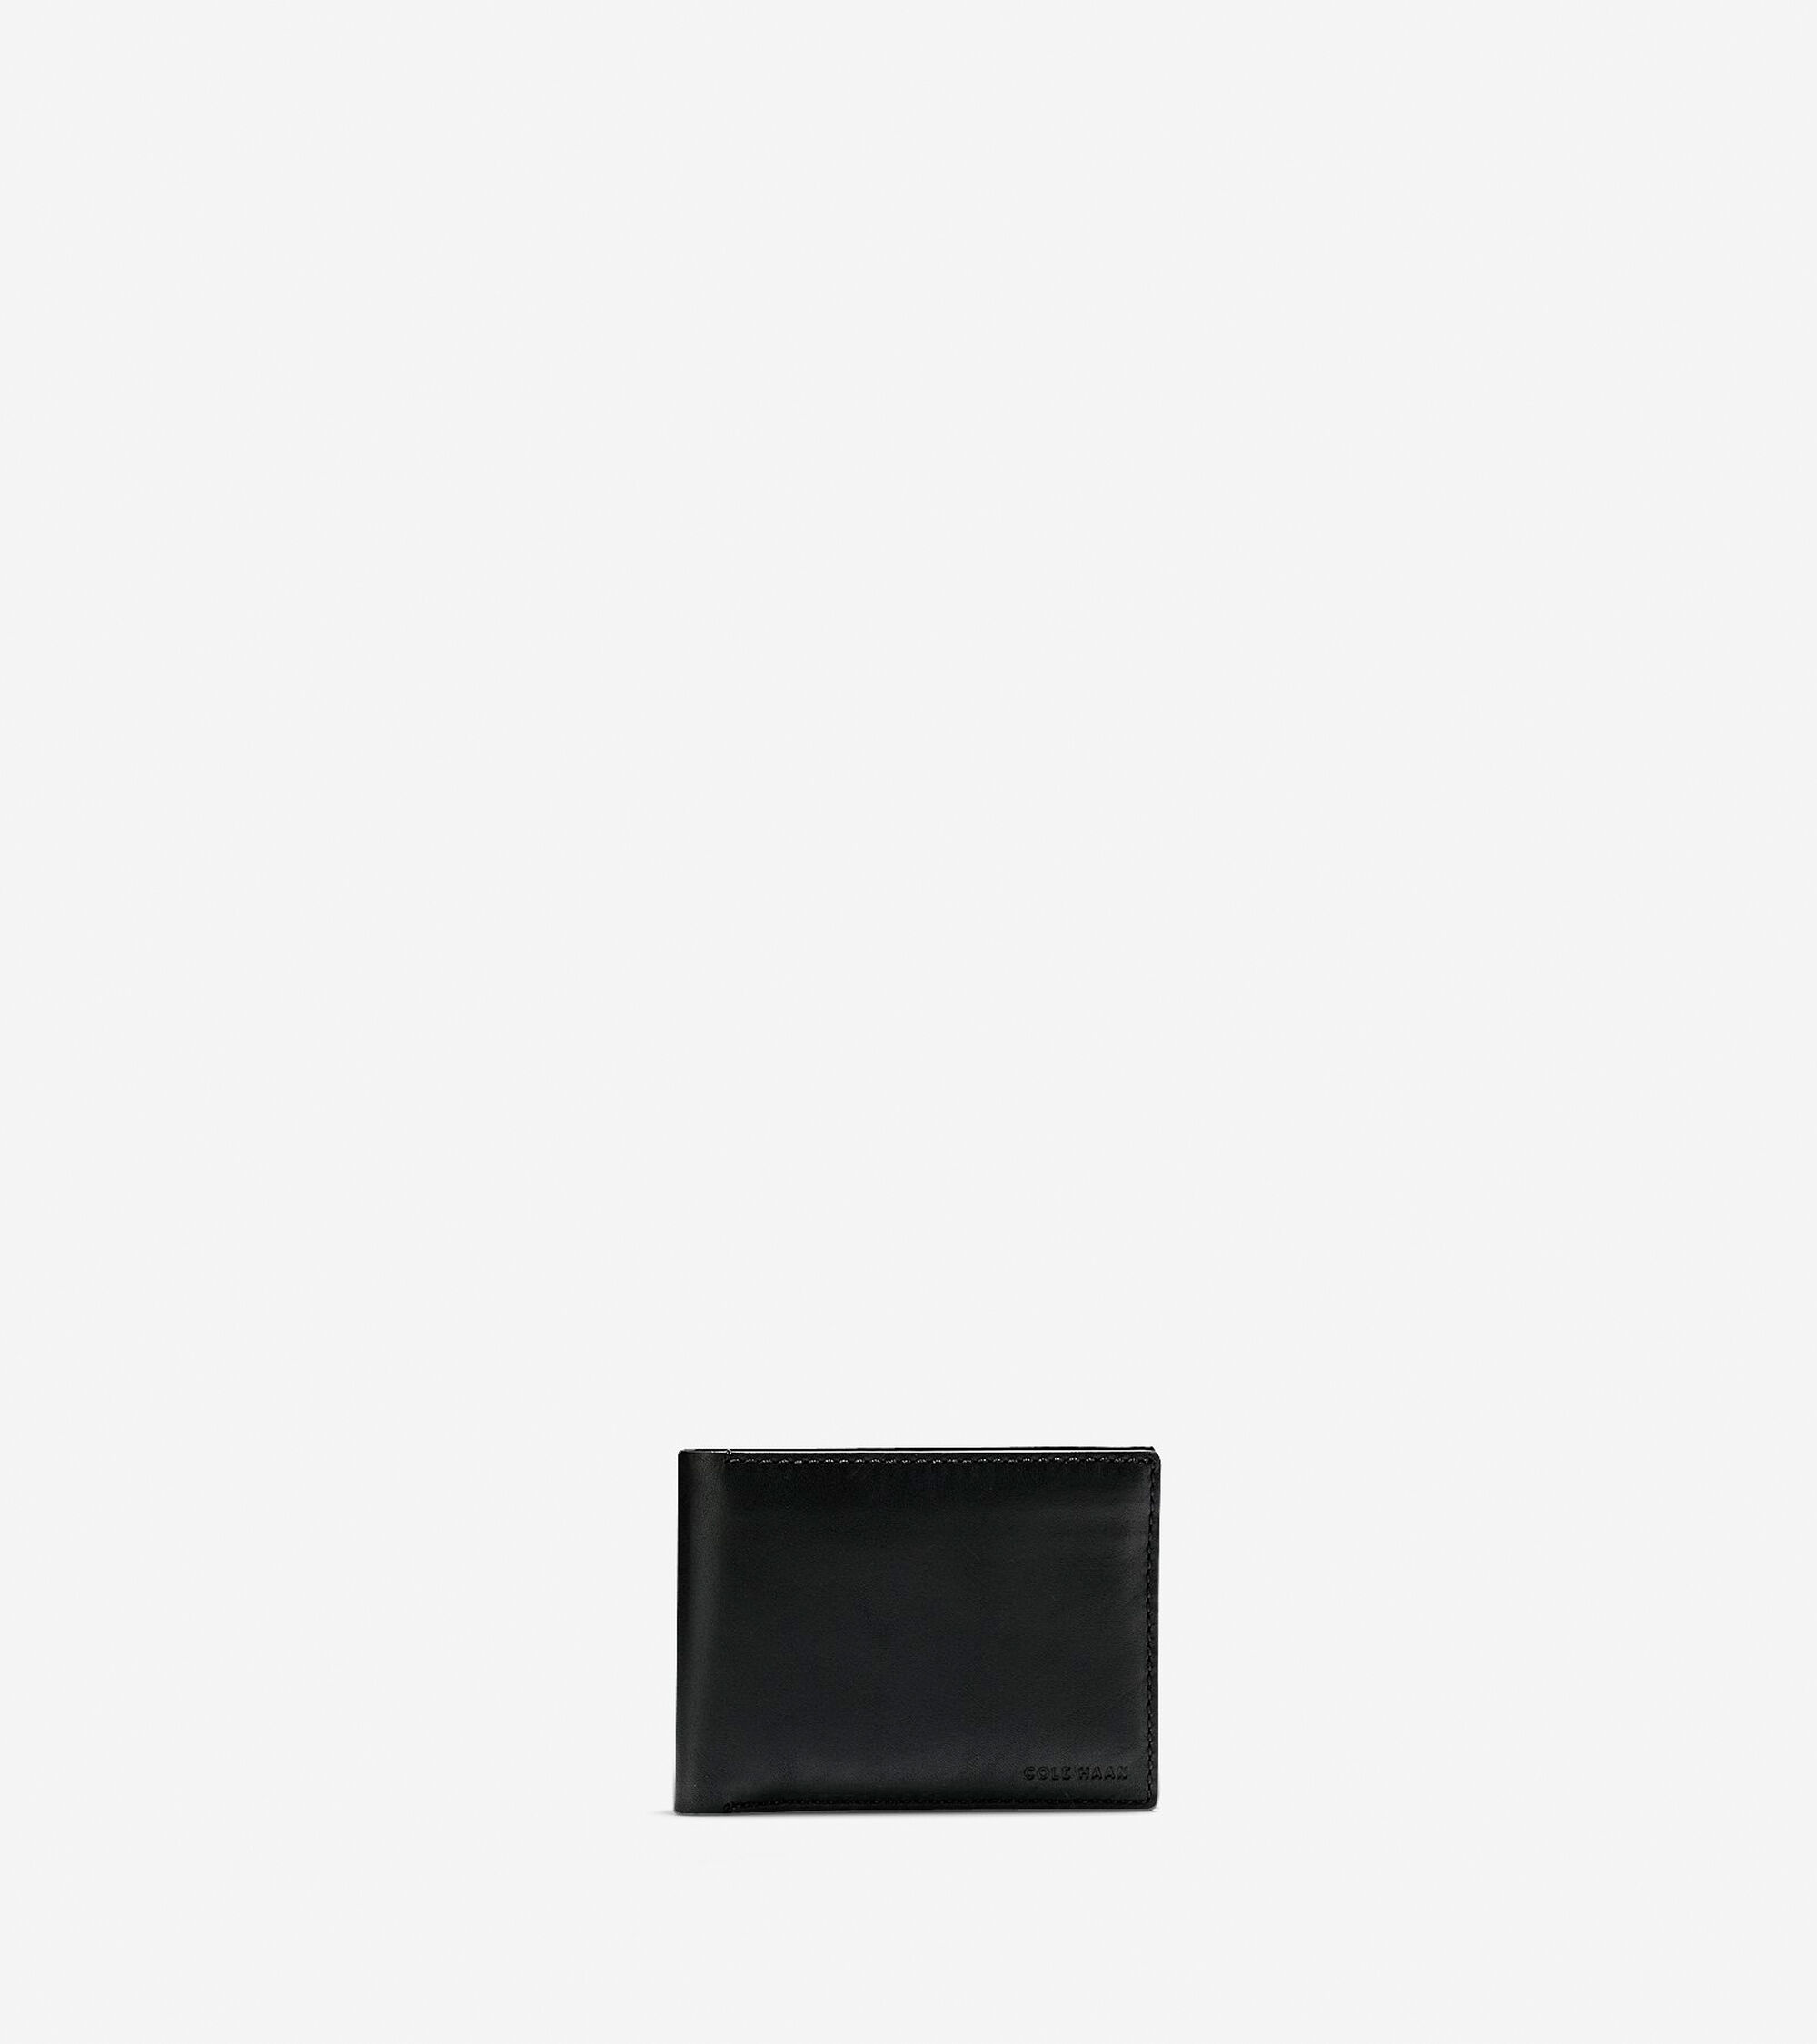 4cf0dc01f129 Cole Haan Men's Wallets and Money Clips | MenStyle USA